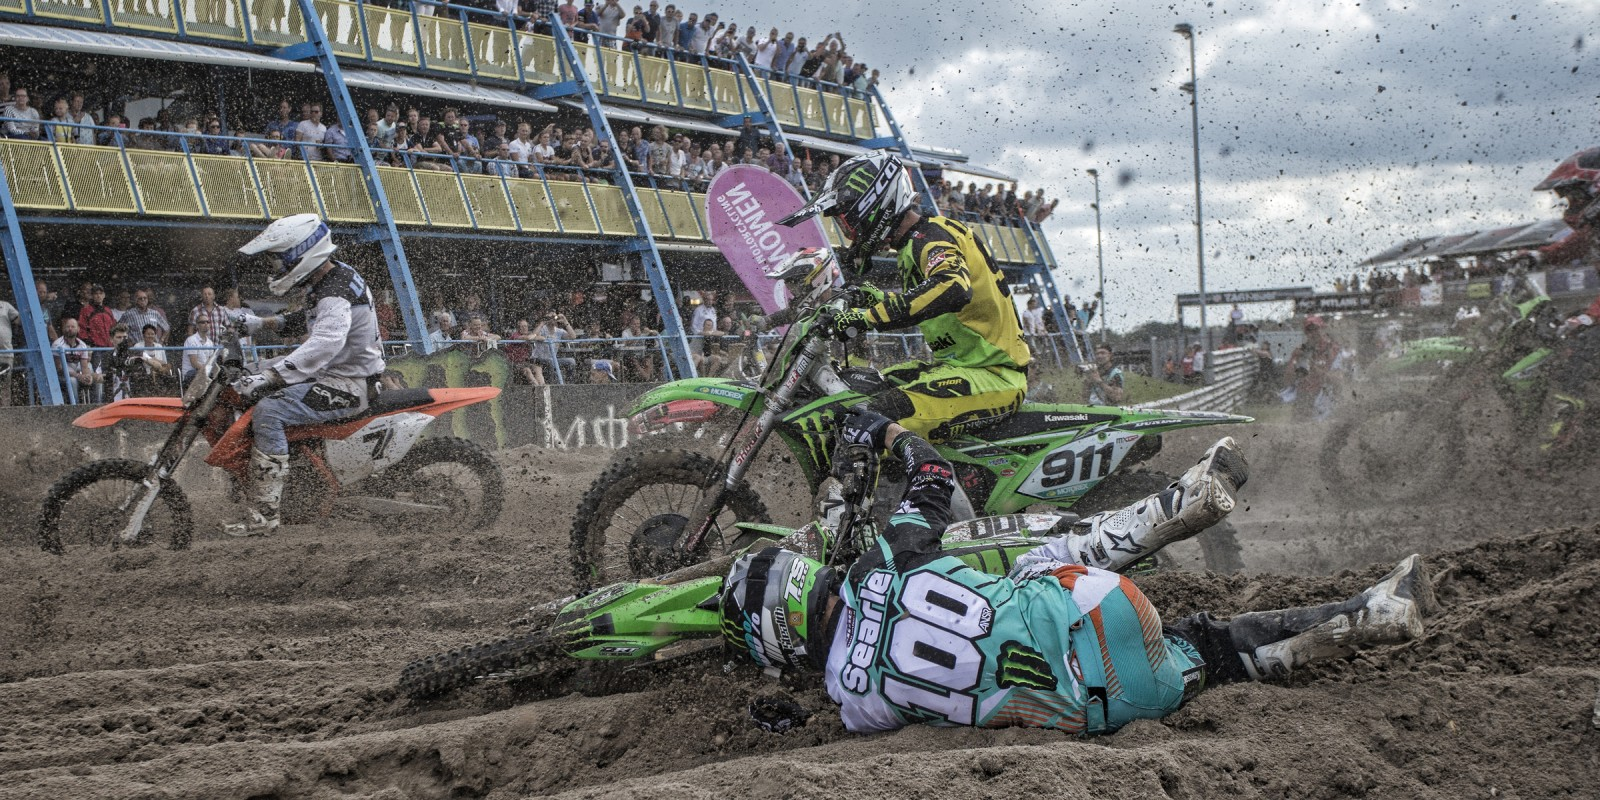 Tommy Searle at the 2016 MXGP of the Netherlands